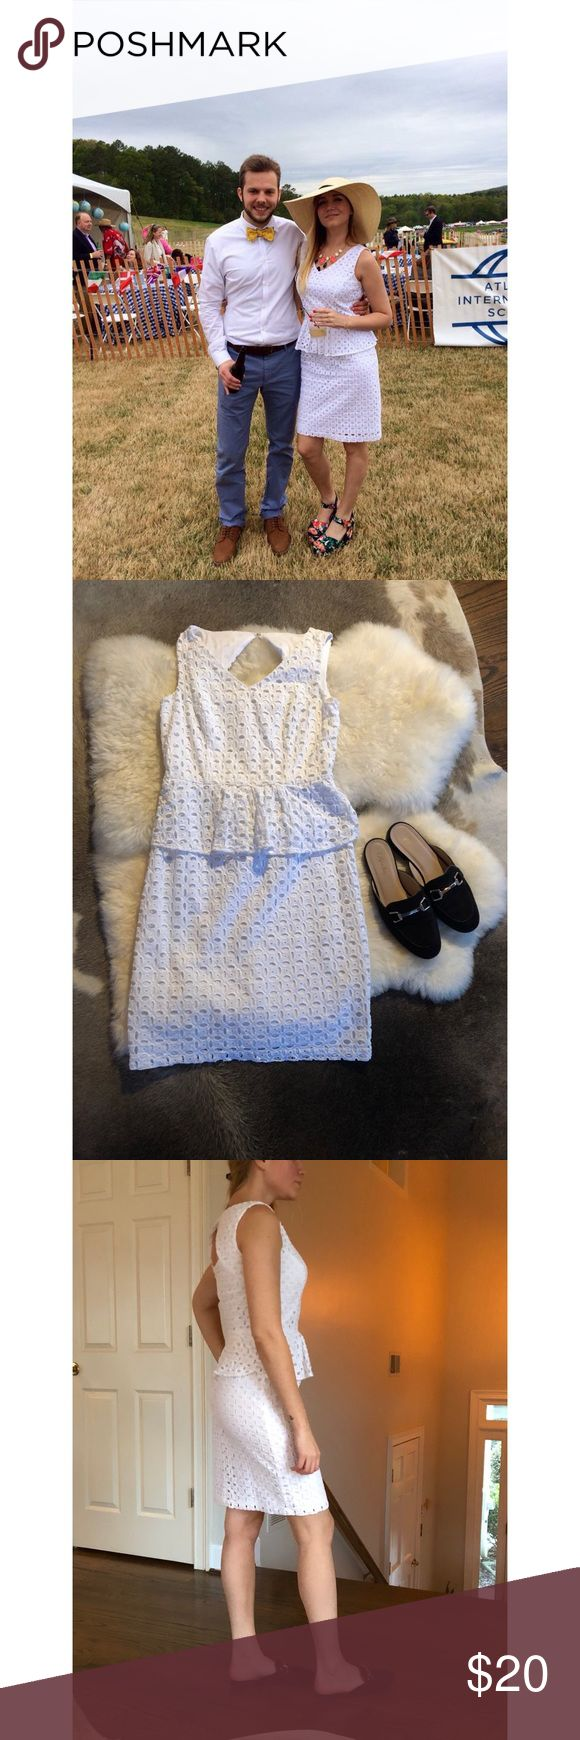 Zara white peplum dress 100% cotton SIZE 2 Perfect little white dress from Zara, SIZE 2 but fits like a 4. Only worn once for an event. In like new condition👌🏻✨ Zara Dresses Midi